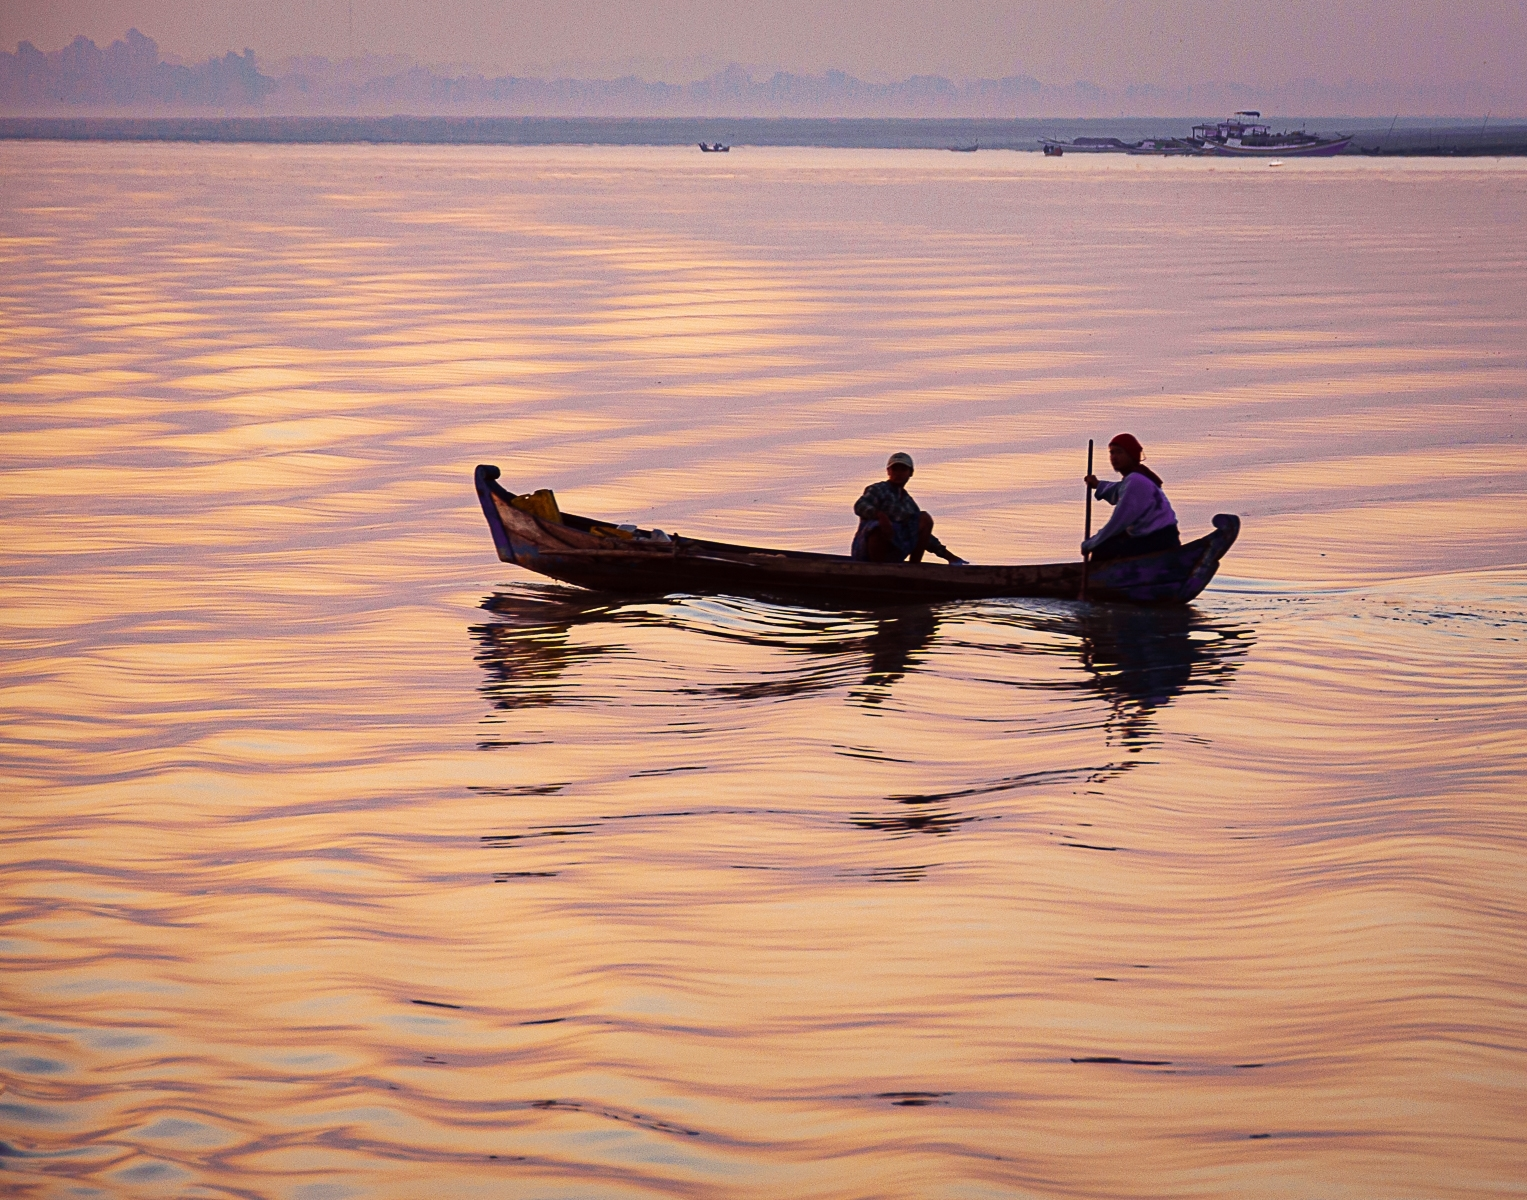 Irrawaddy-River-Myanmar-at-dusk.-PB-1-Place-by-Angela-Grove-MR